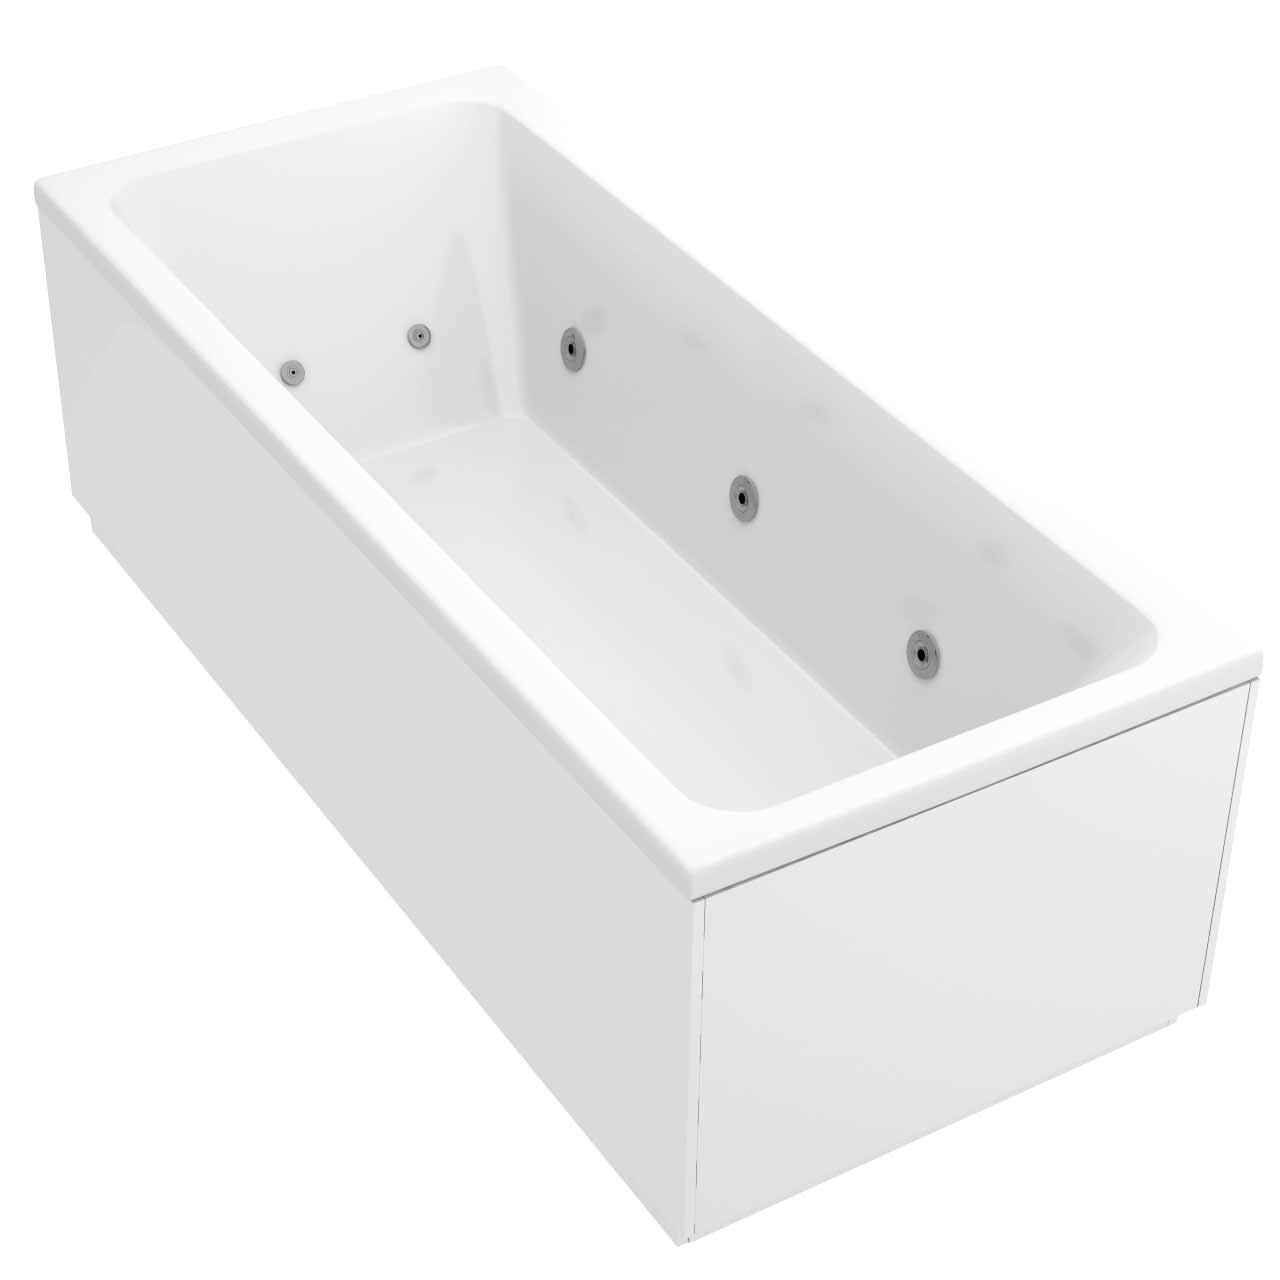 Square Centre Tap 12 Jet Chrome Flat Jet Whirlpool Bath 1700x750mm